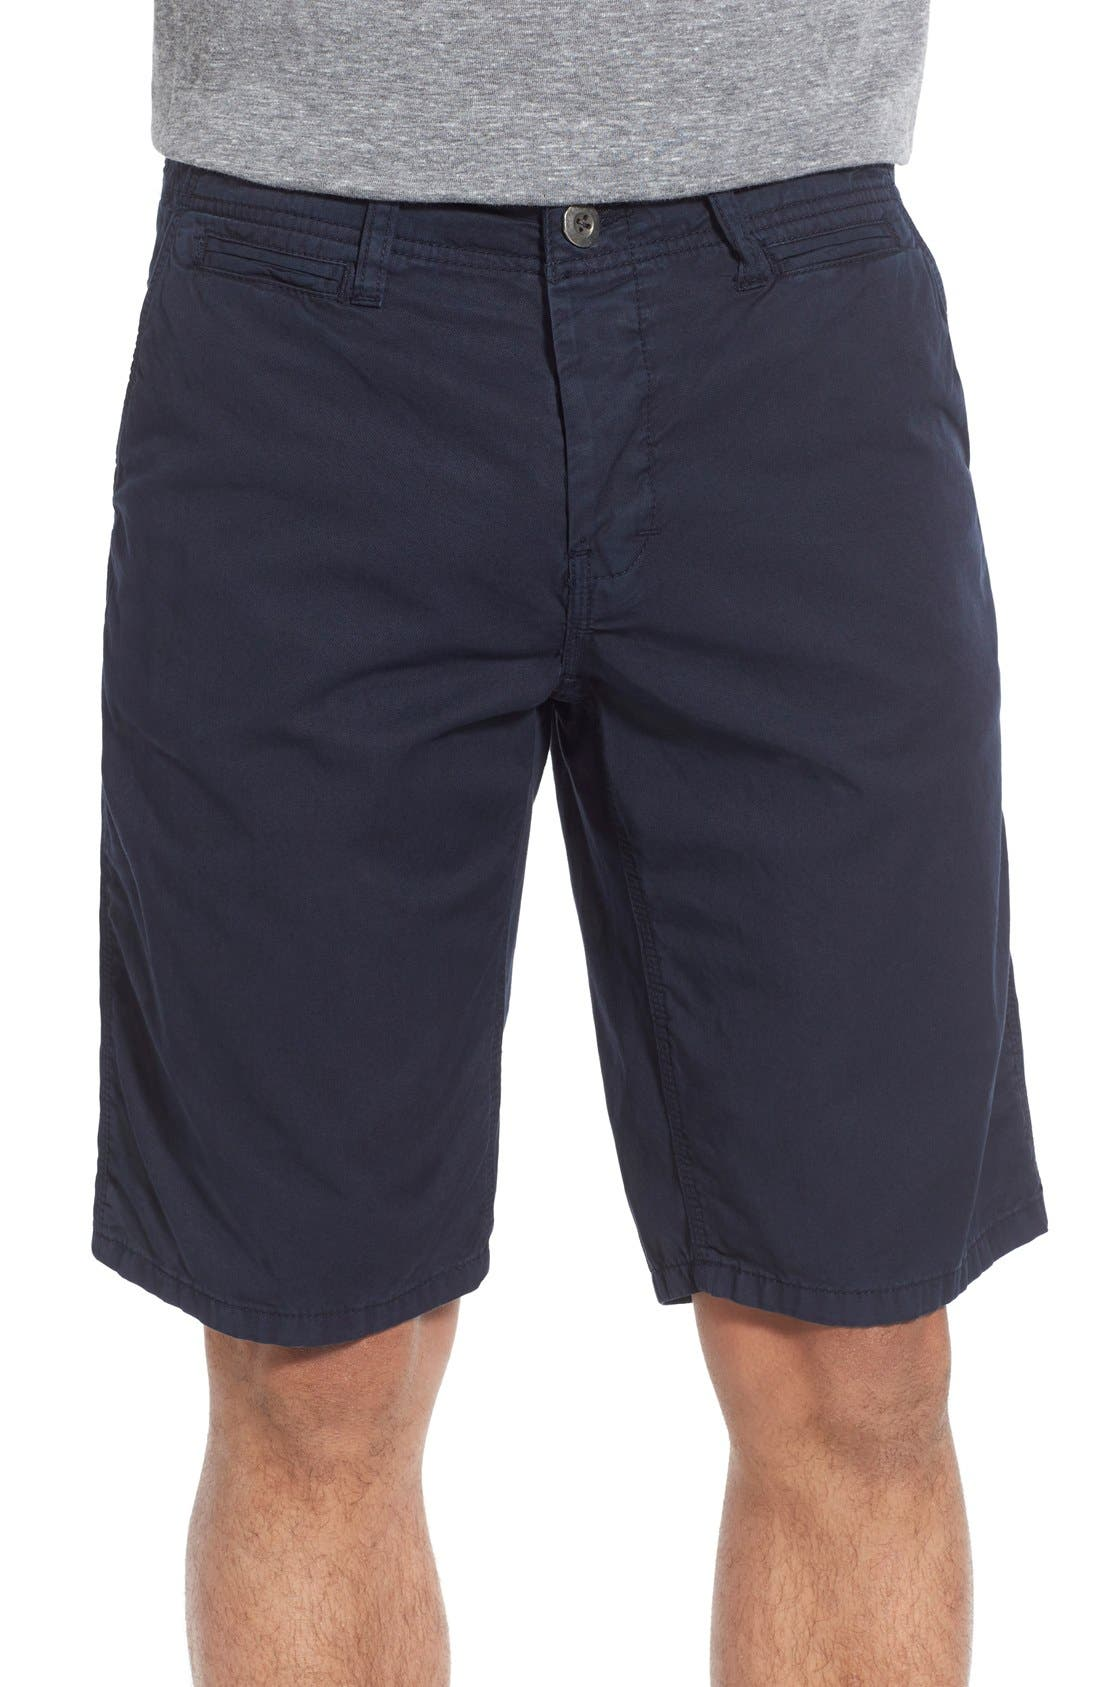 'Napa' Chino Shorts,                             Main thumbnail 11, color,